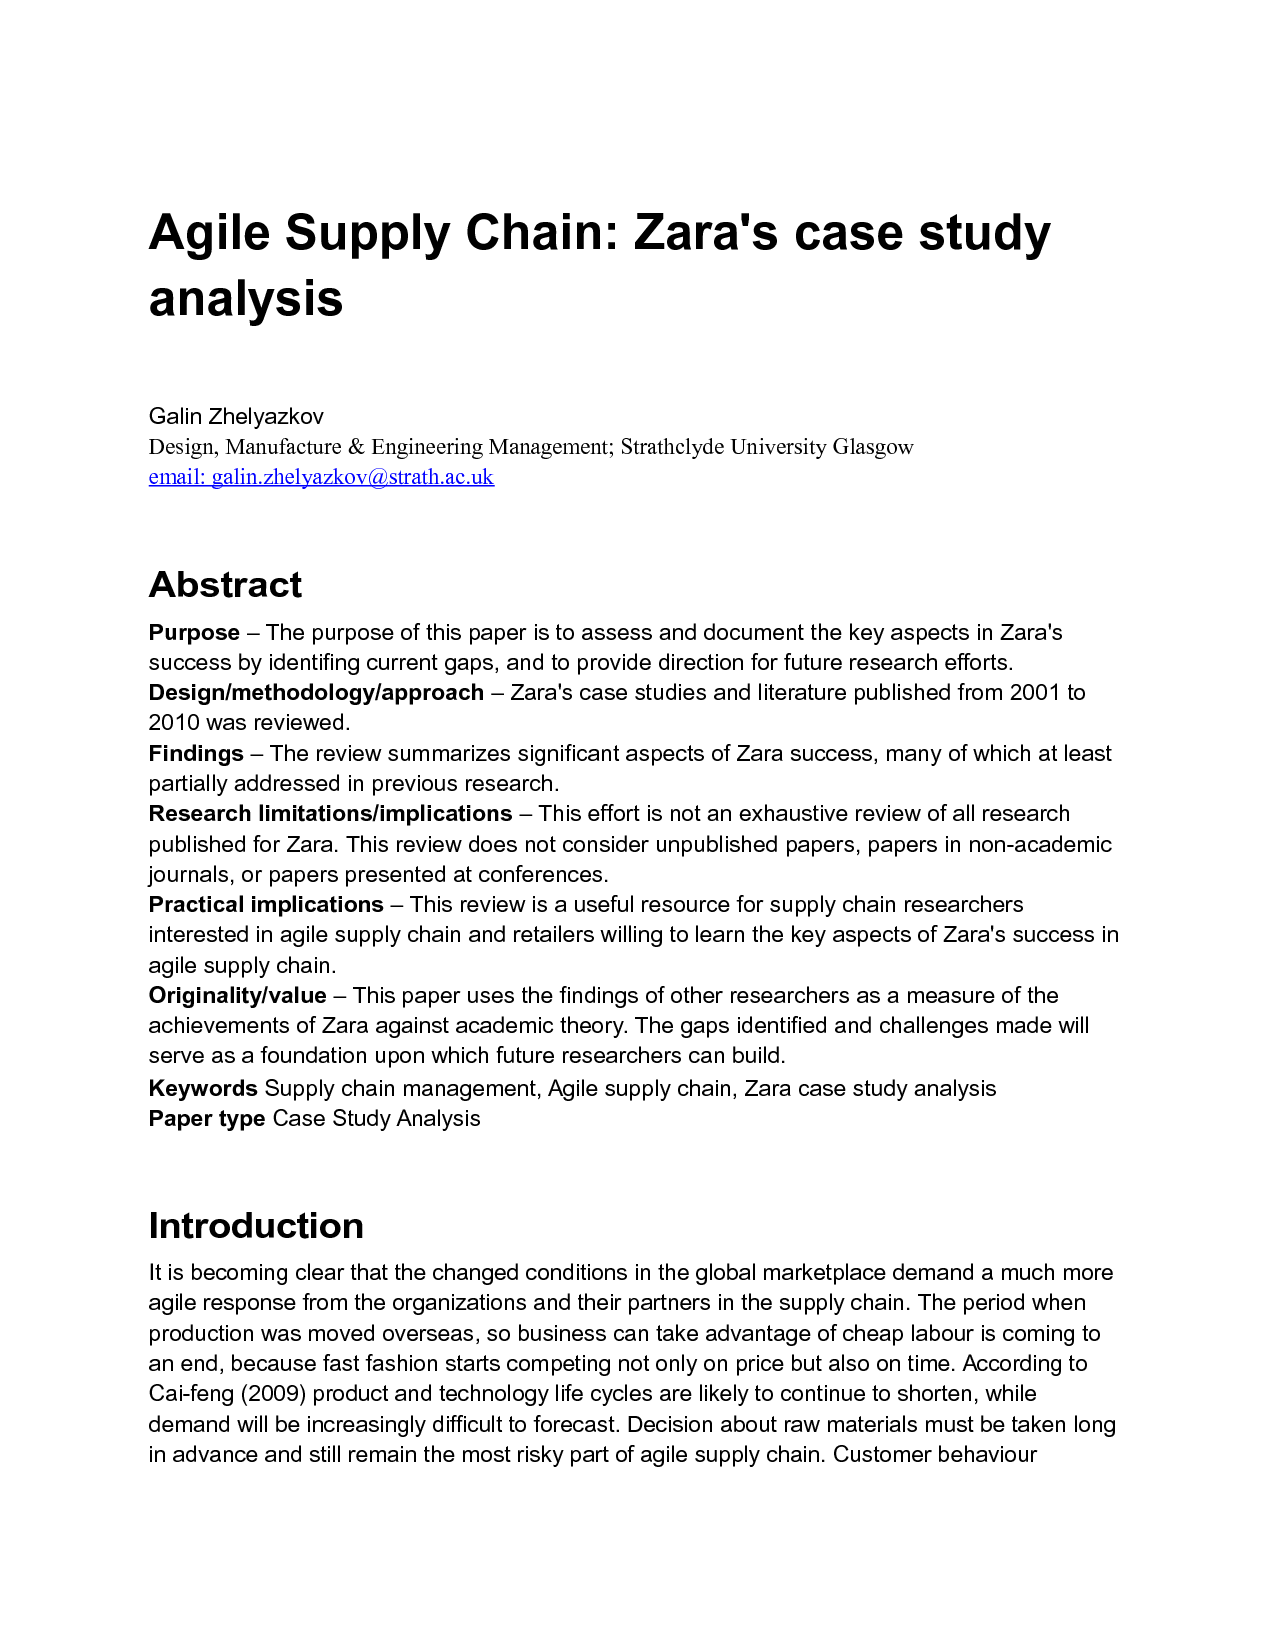 zara supply chain analysis Can anyone tell me about the difference between supply chain strategies of zara 2003  market penetration • consumer behavior analysis 19 •zara's.